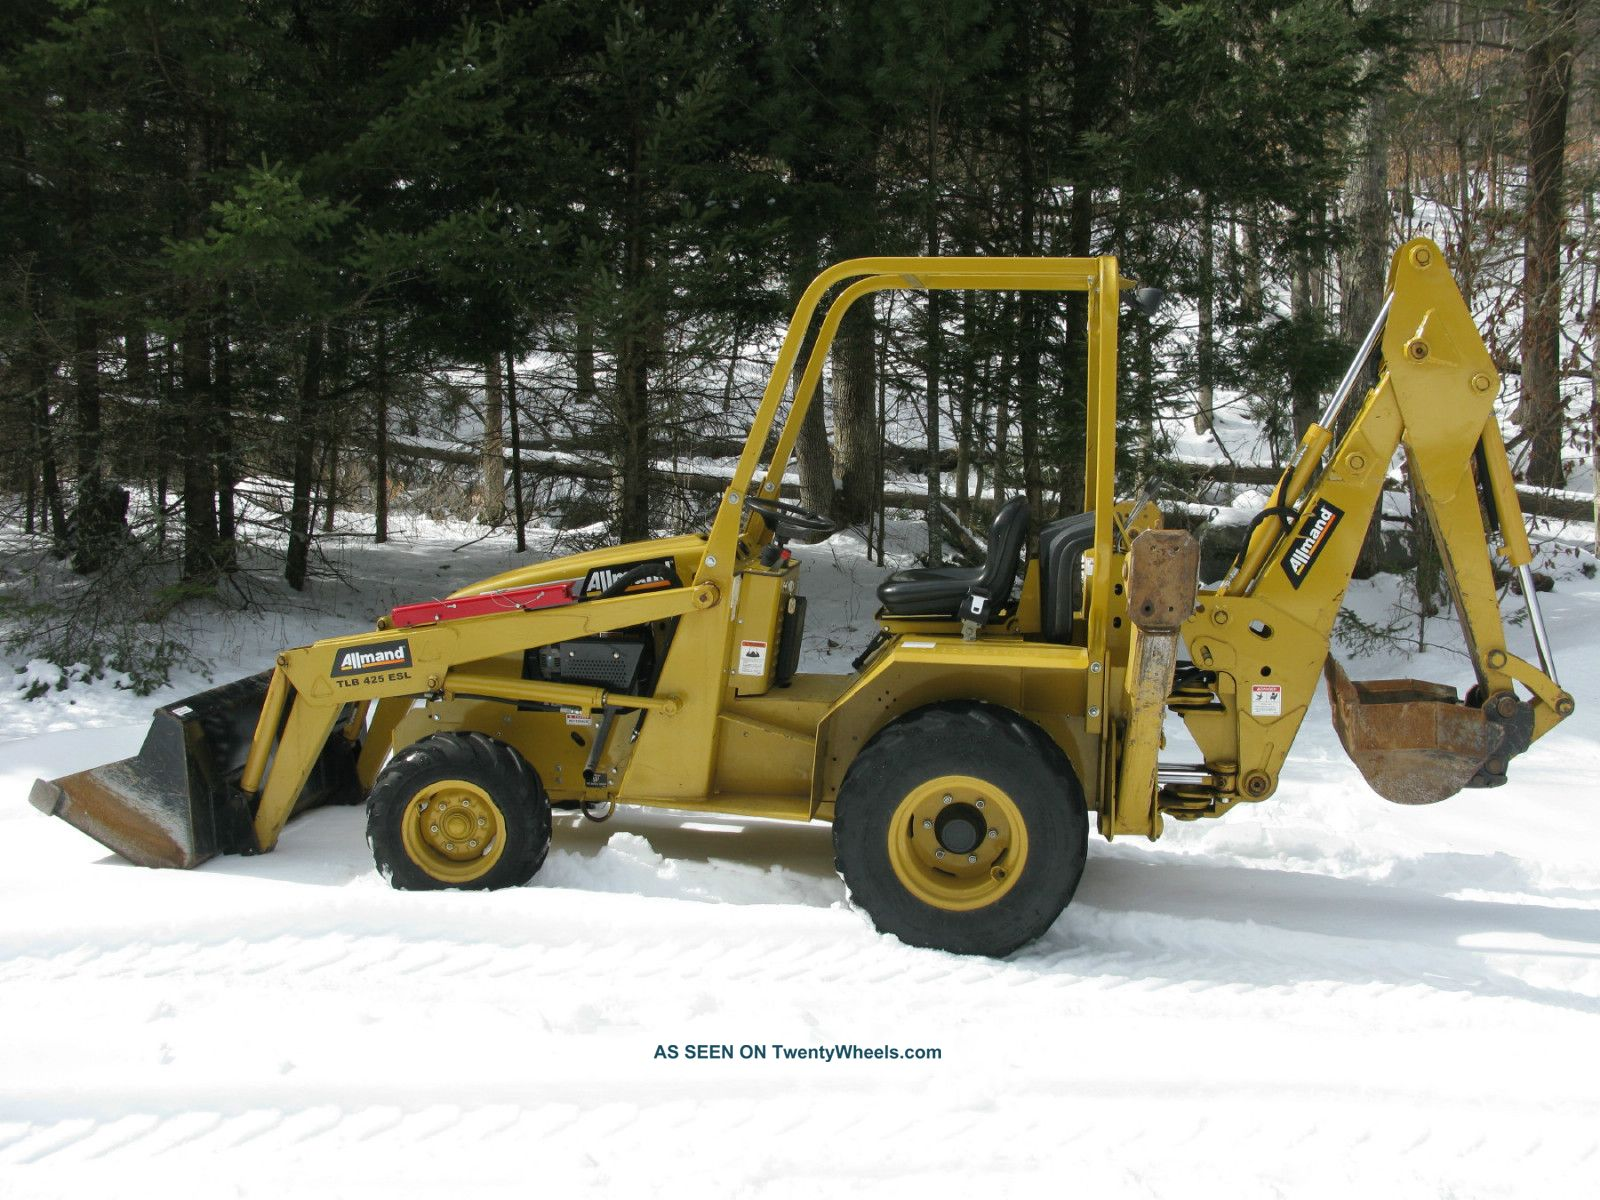 2011 Allmand Tlb425 Esl Tractor Loader Backhoe - Excellent Machine Crawler Dozers & Loaders photo